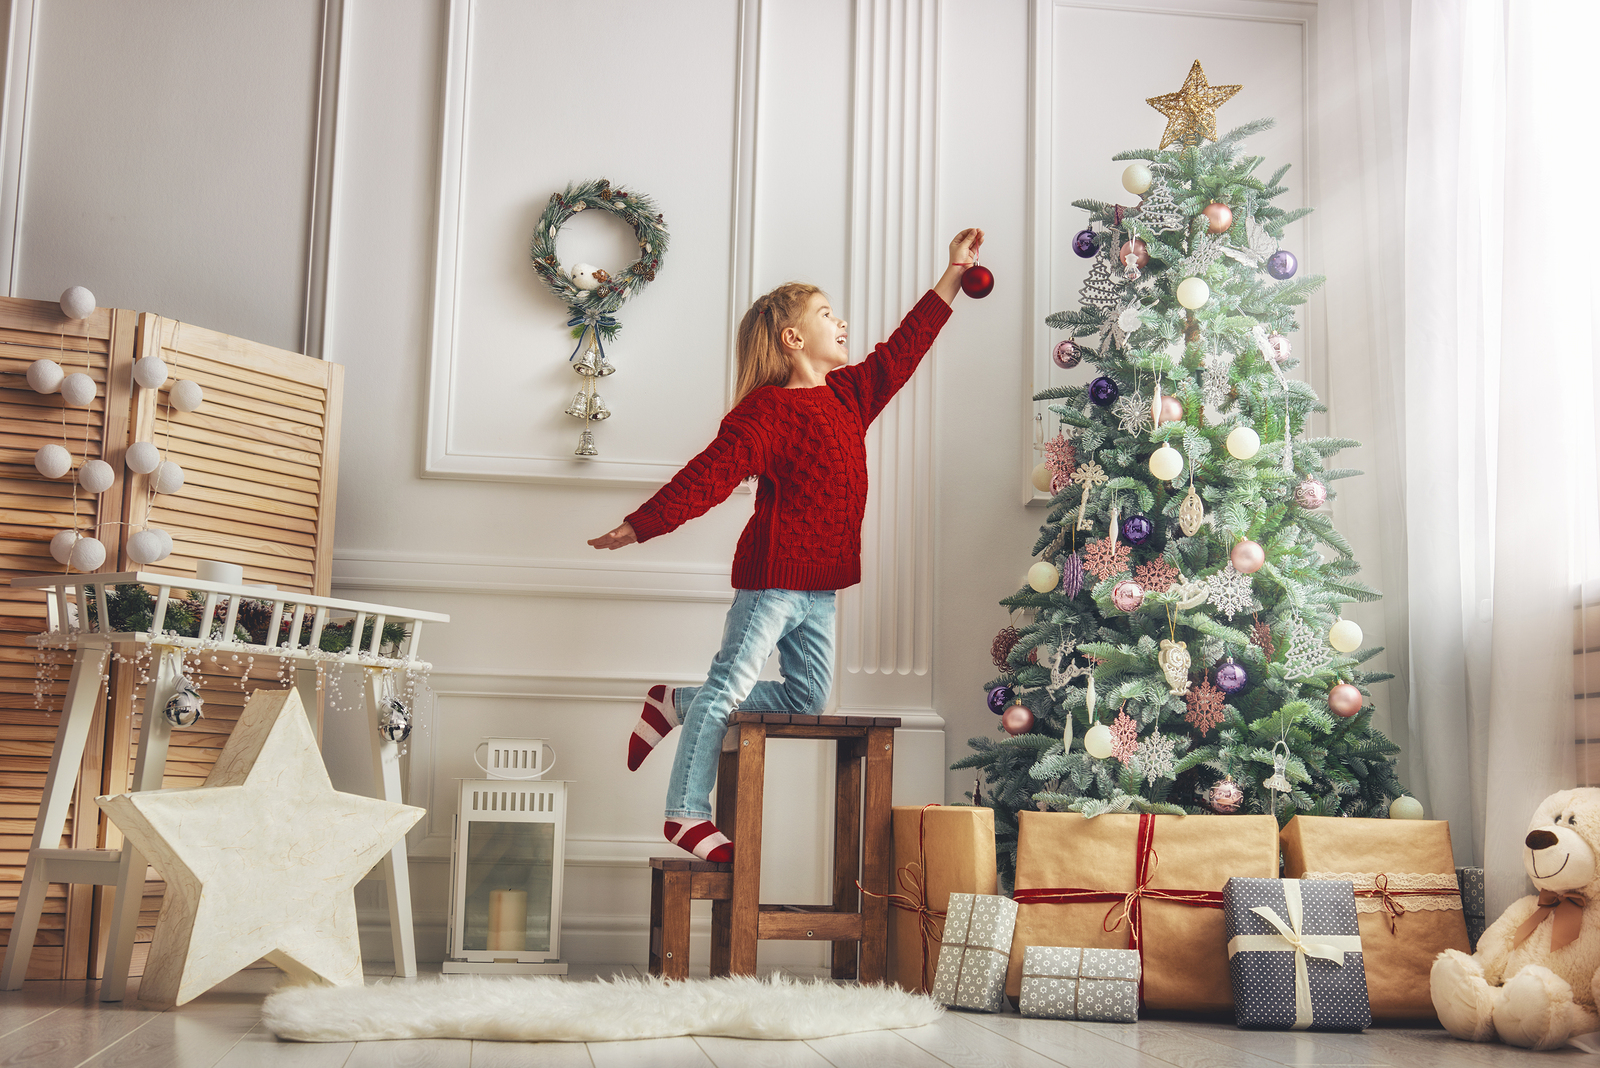 A young girl places an ornament on a Christmas tree.